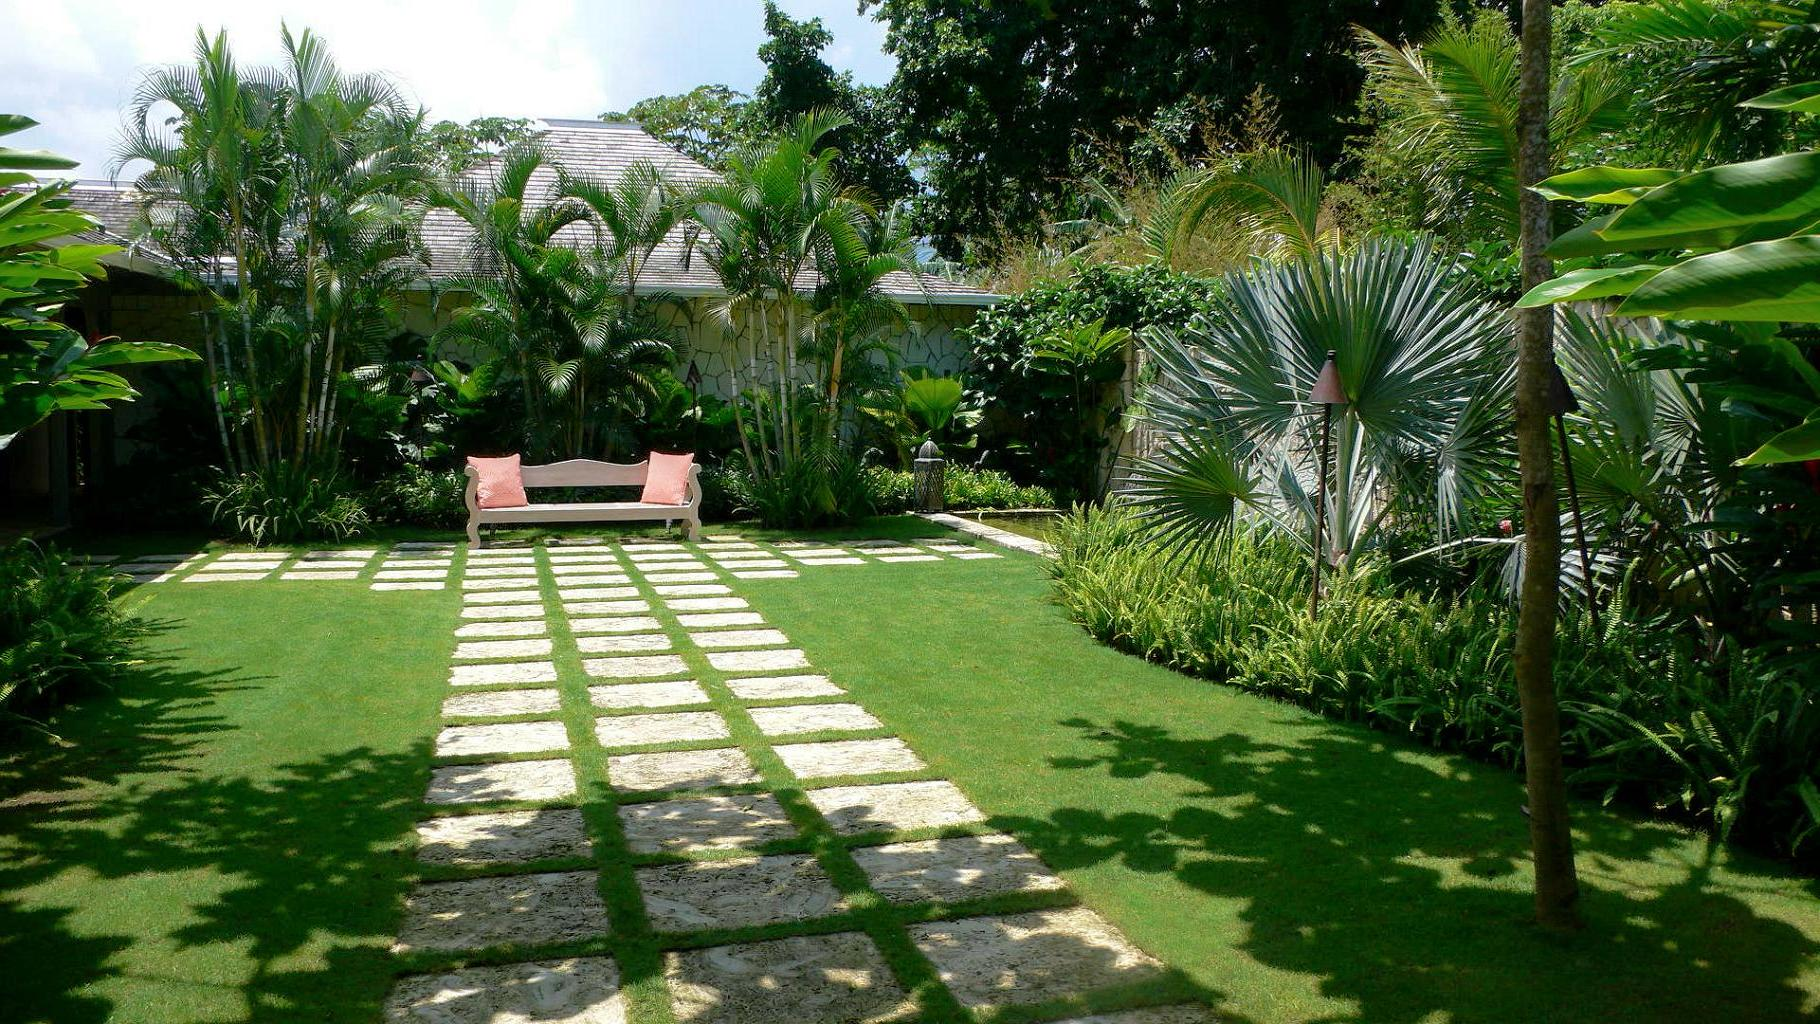 Tropical garden design landscaping in brisbane for Tropical garden designs